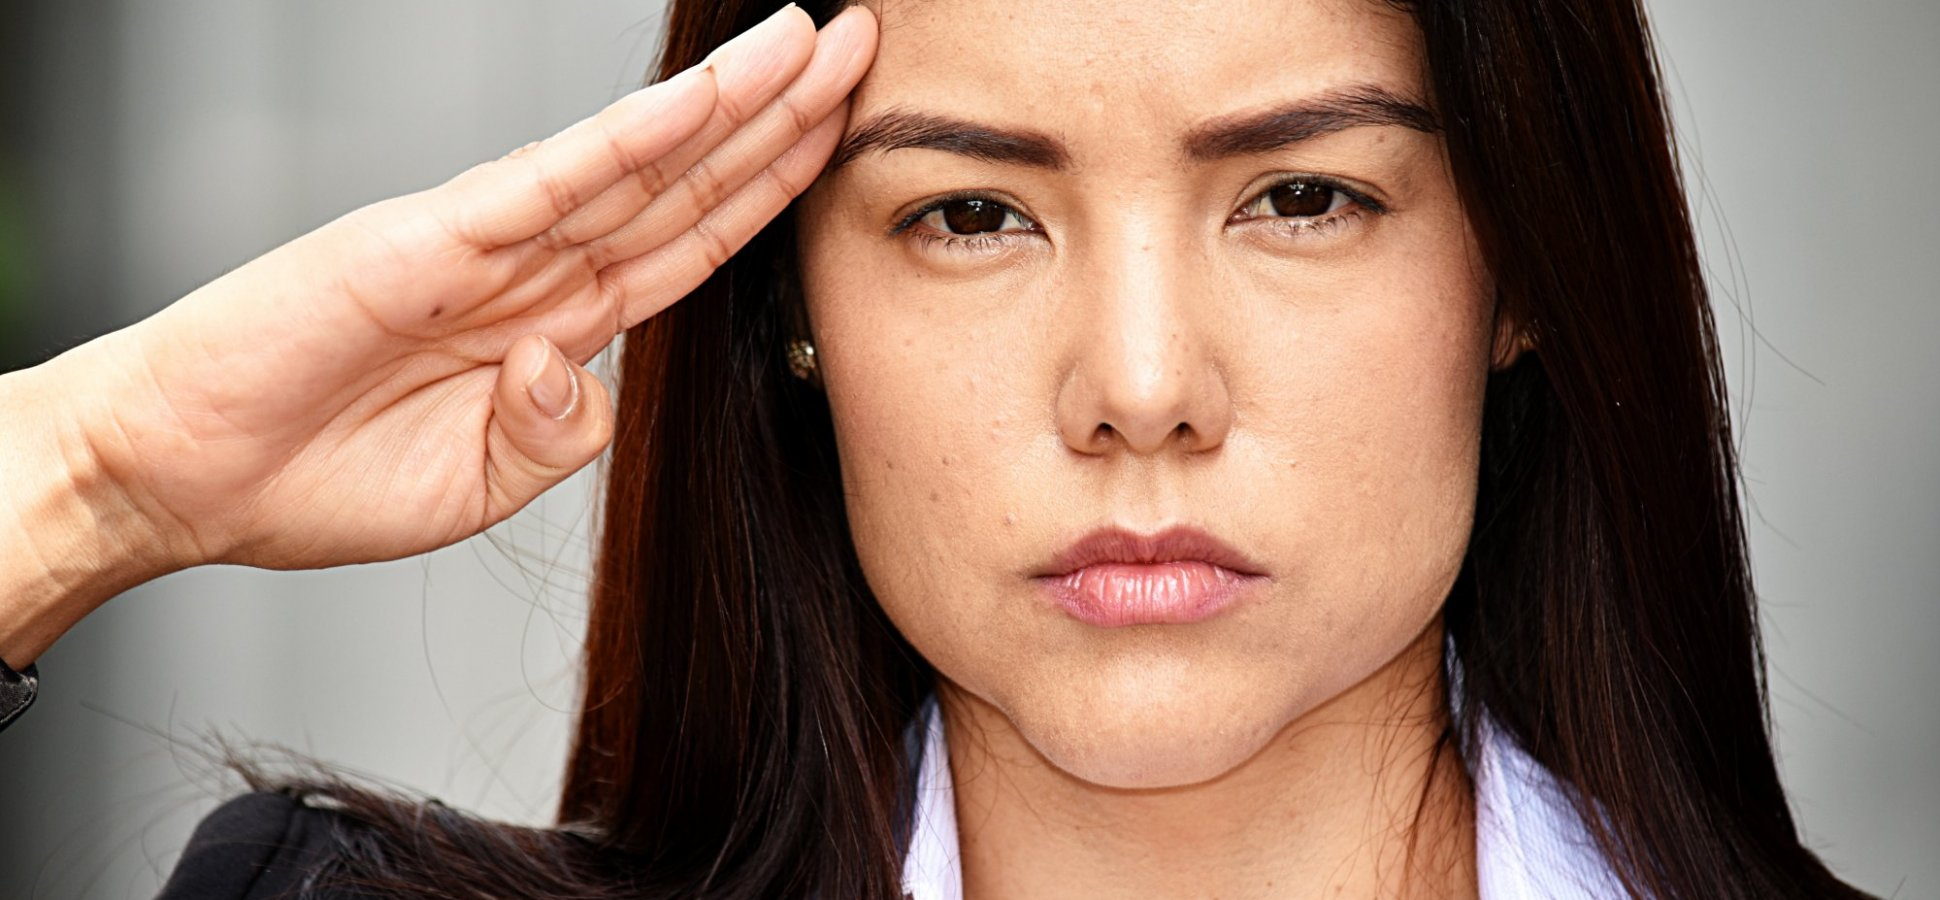 Sexist Military Language Infiltrates Business Culture, Making it Tougher for Women to Rise in the Ranks